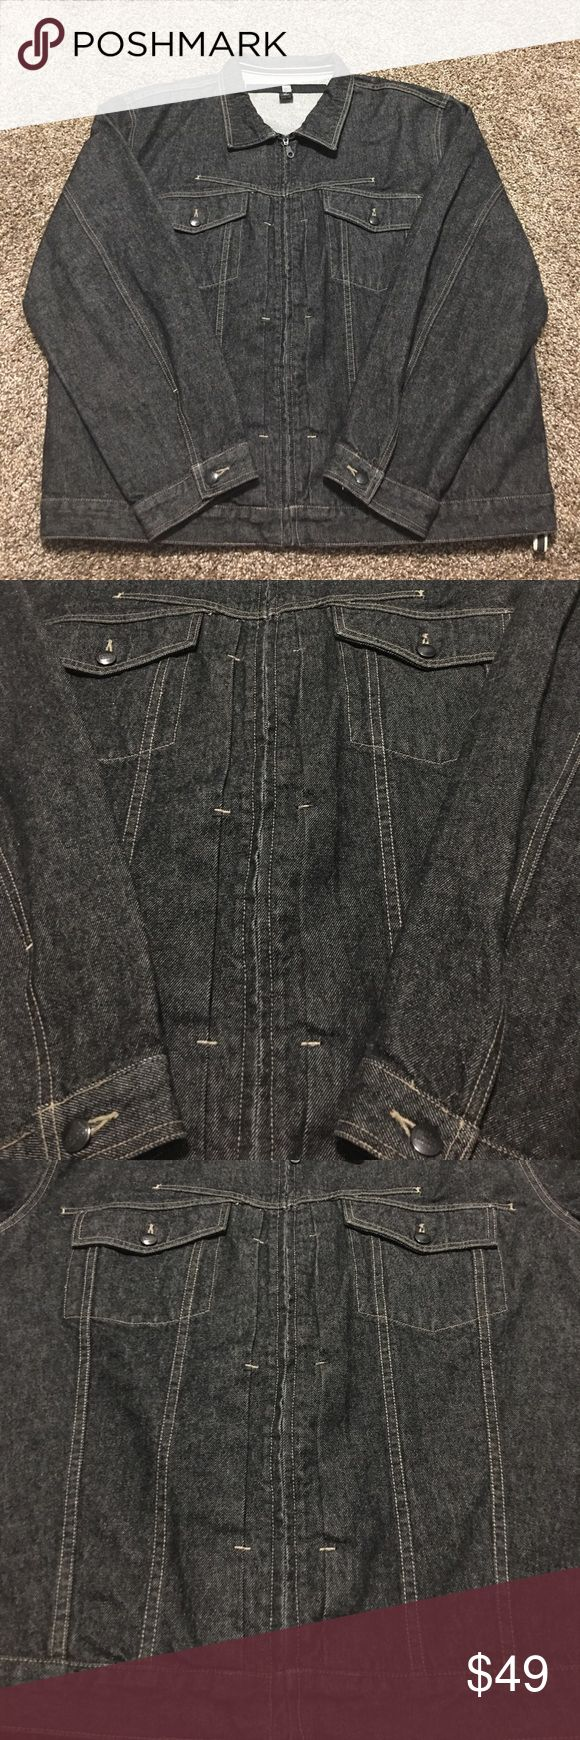 Marithe Francois Girbaud Men's Denim Jacket * Like New Condition  * Size XX Large * Color: Dark Wash * Denim/Jean Jacket * Any Questions, Please Ask Marithe Francois Girbaud Jackets & Coats